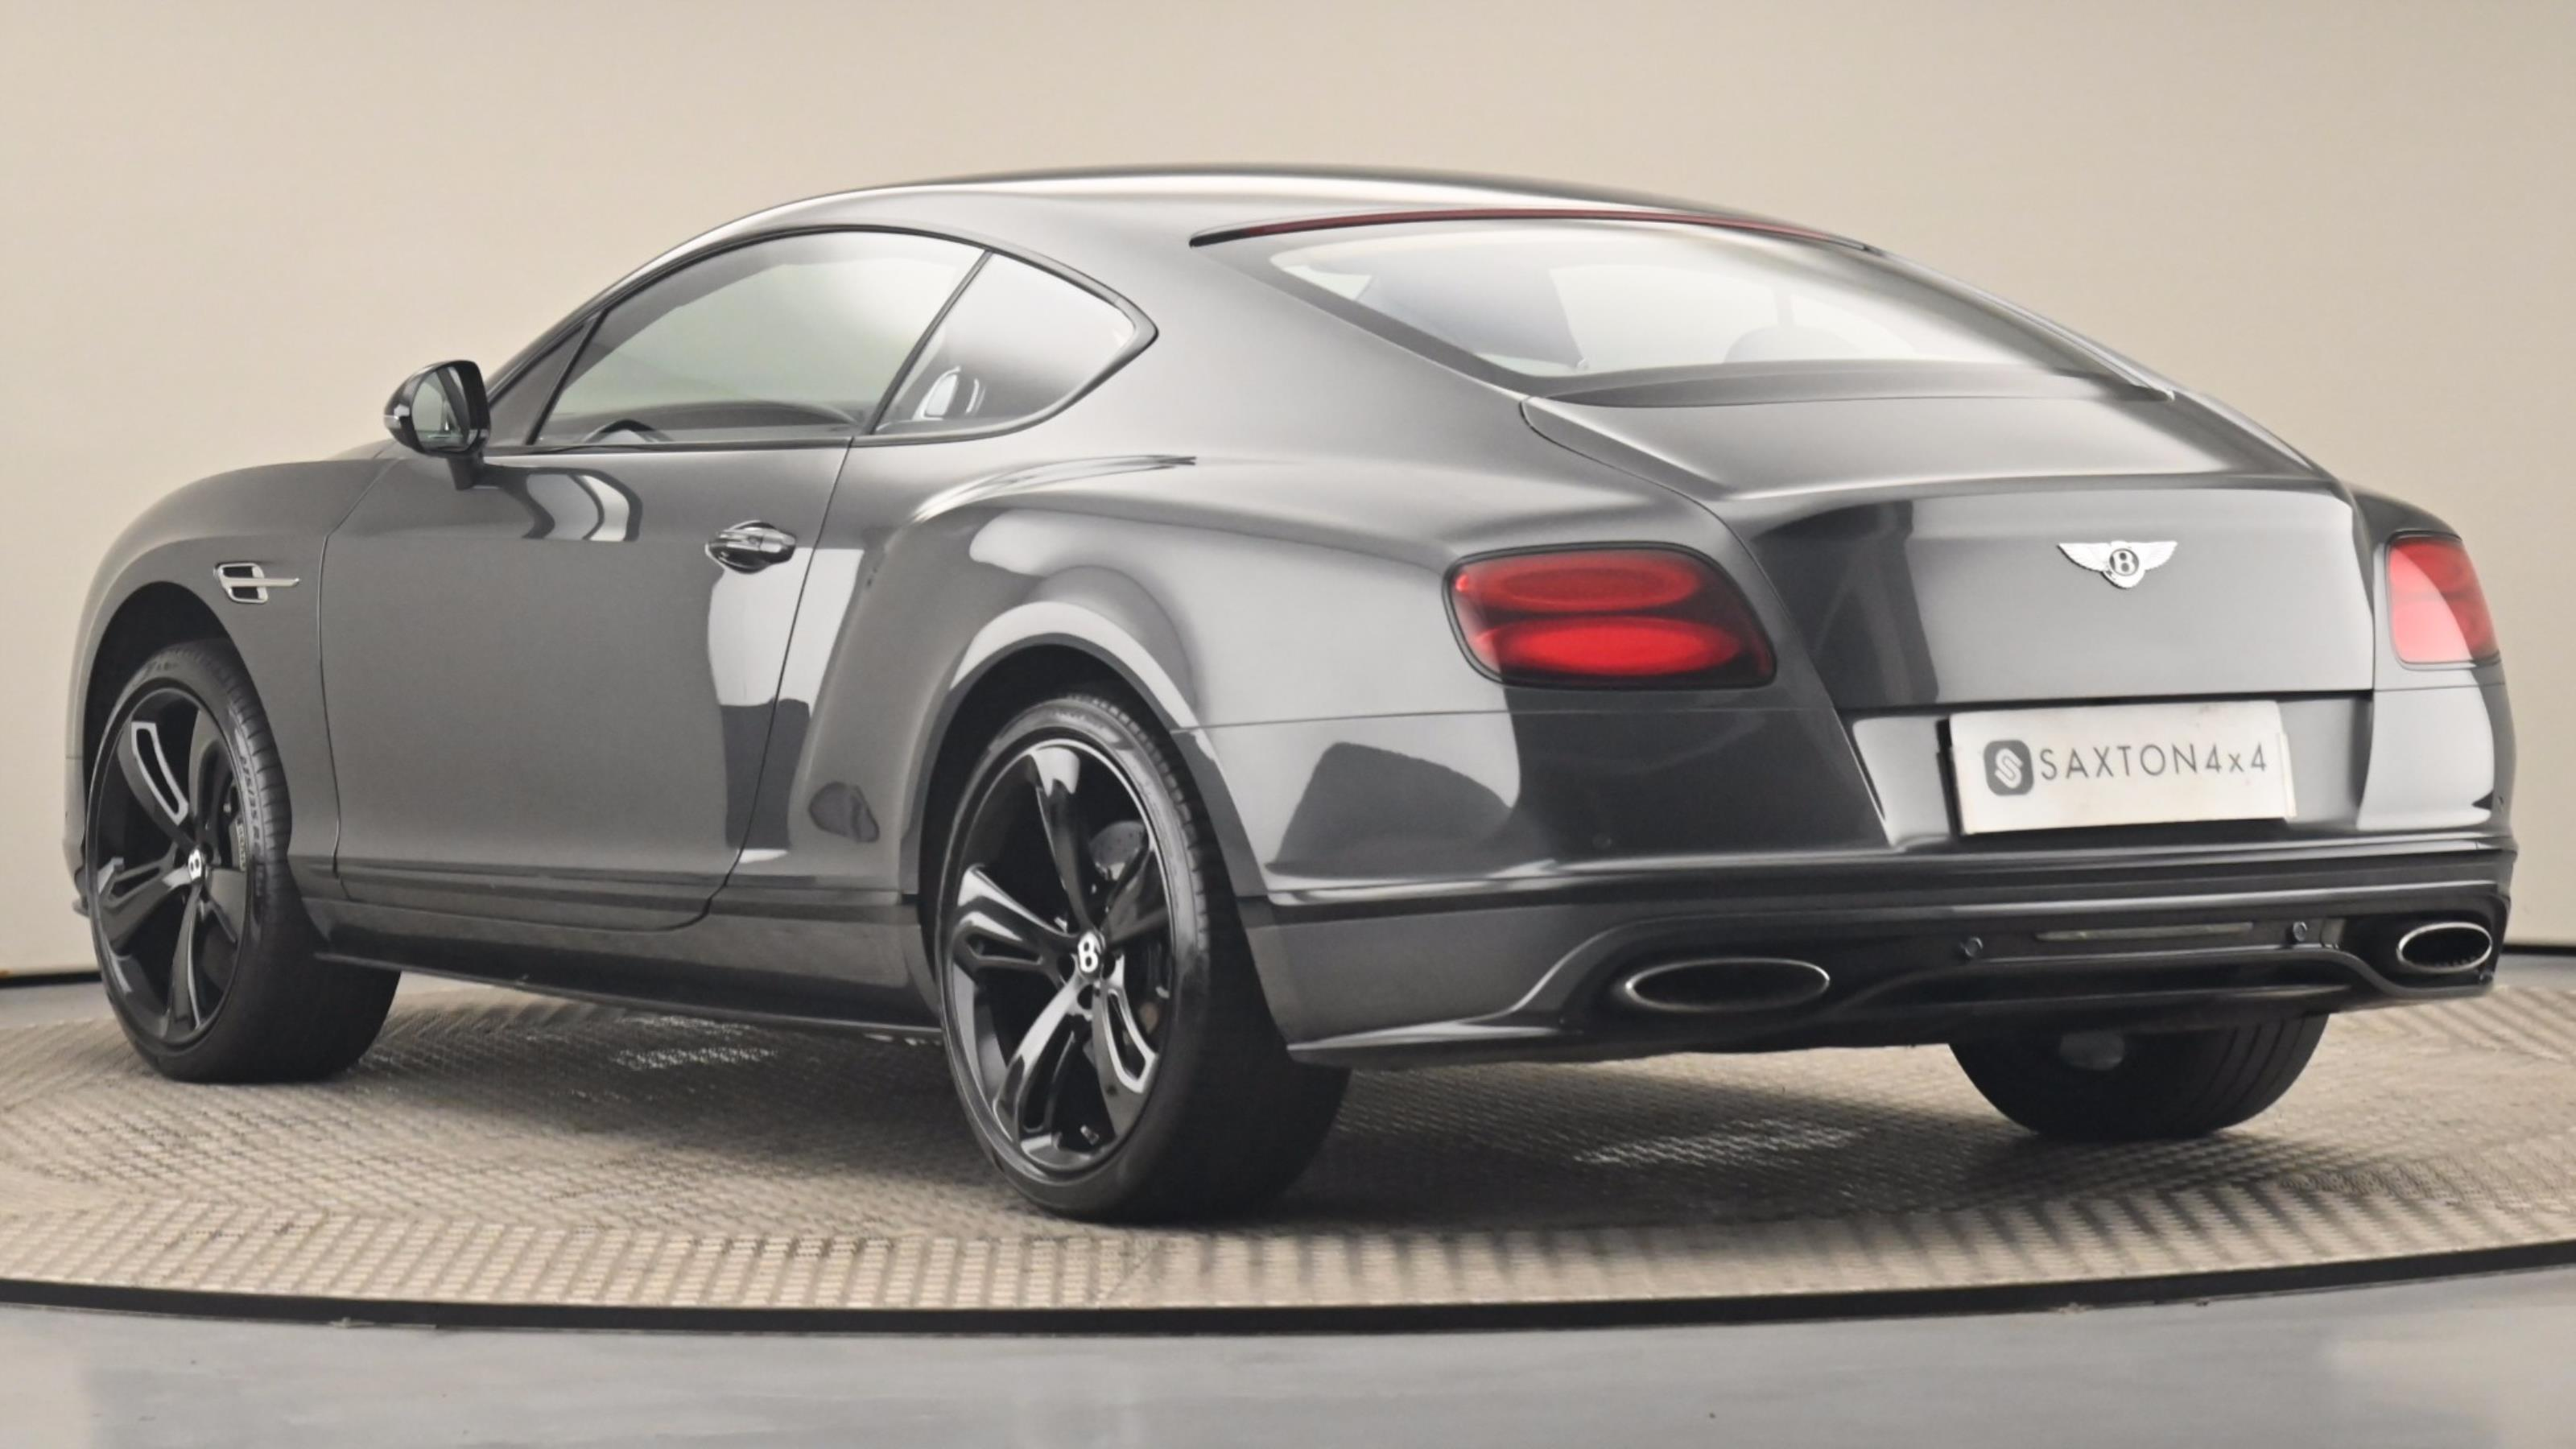 Used 2016 Bentley Continental Gt Speed Auto ~ at Saxton4x4